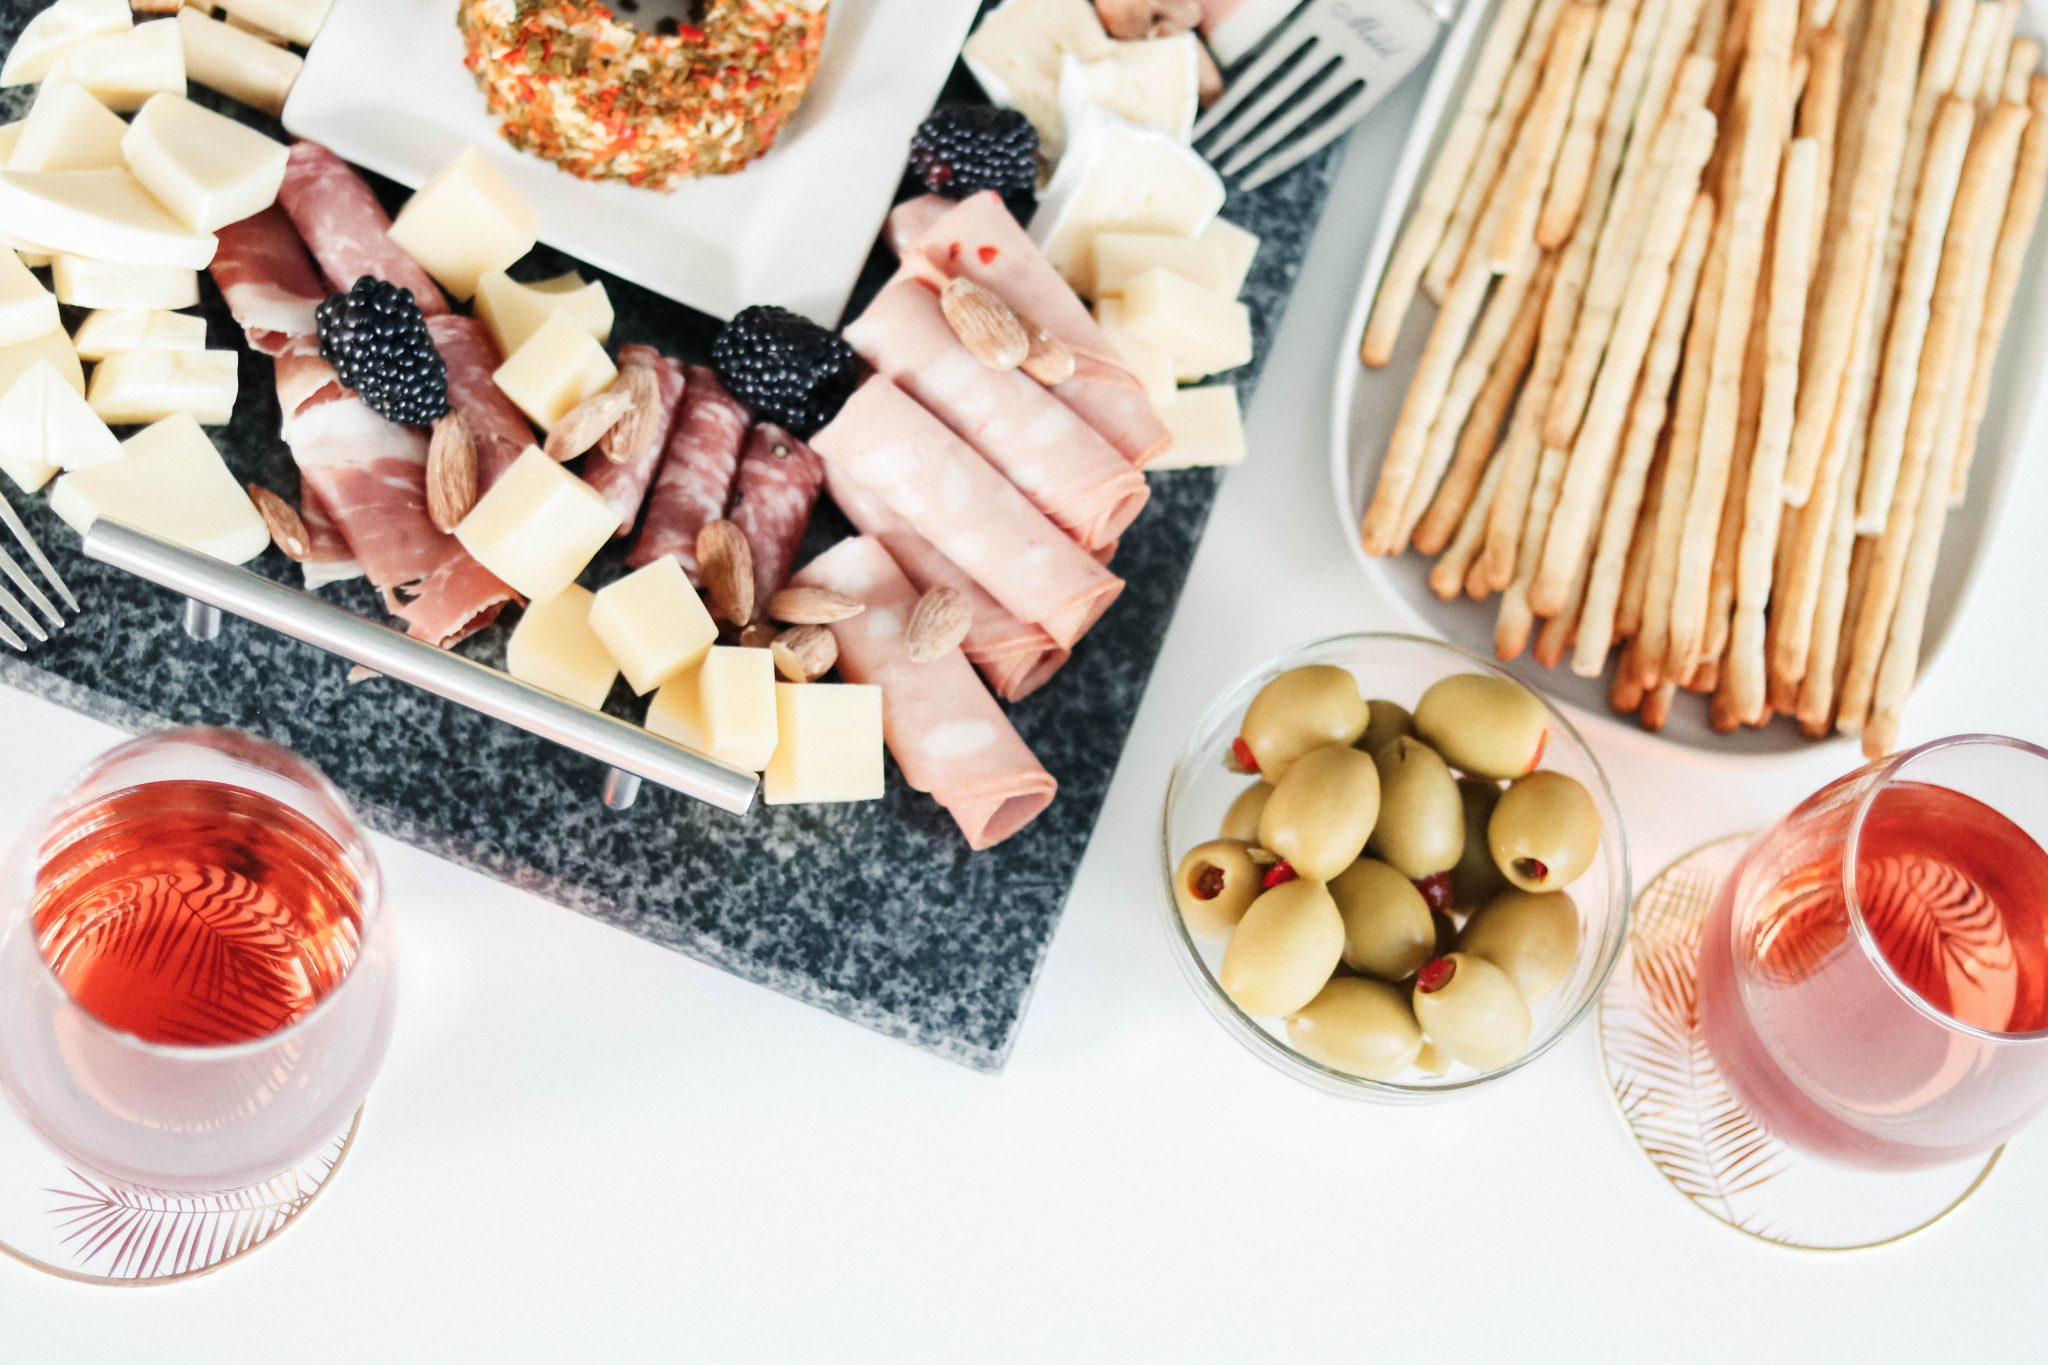 instagrammable cheese and meat board styling ideas 2